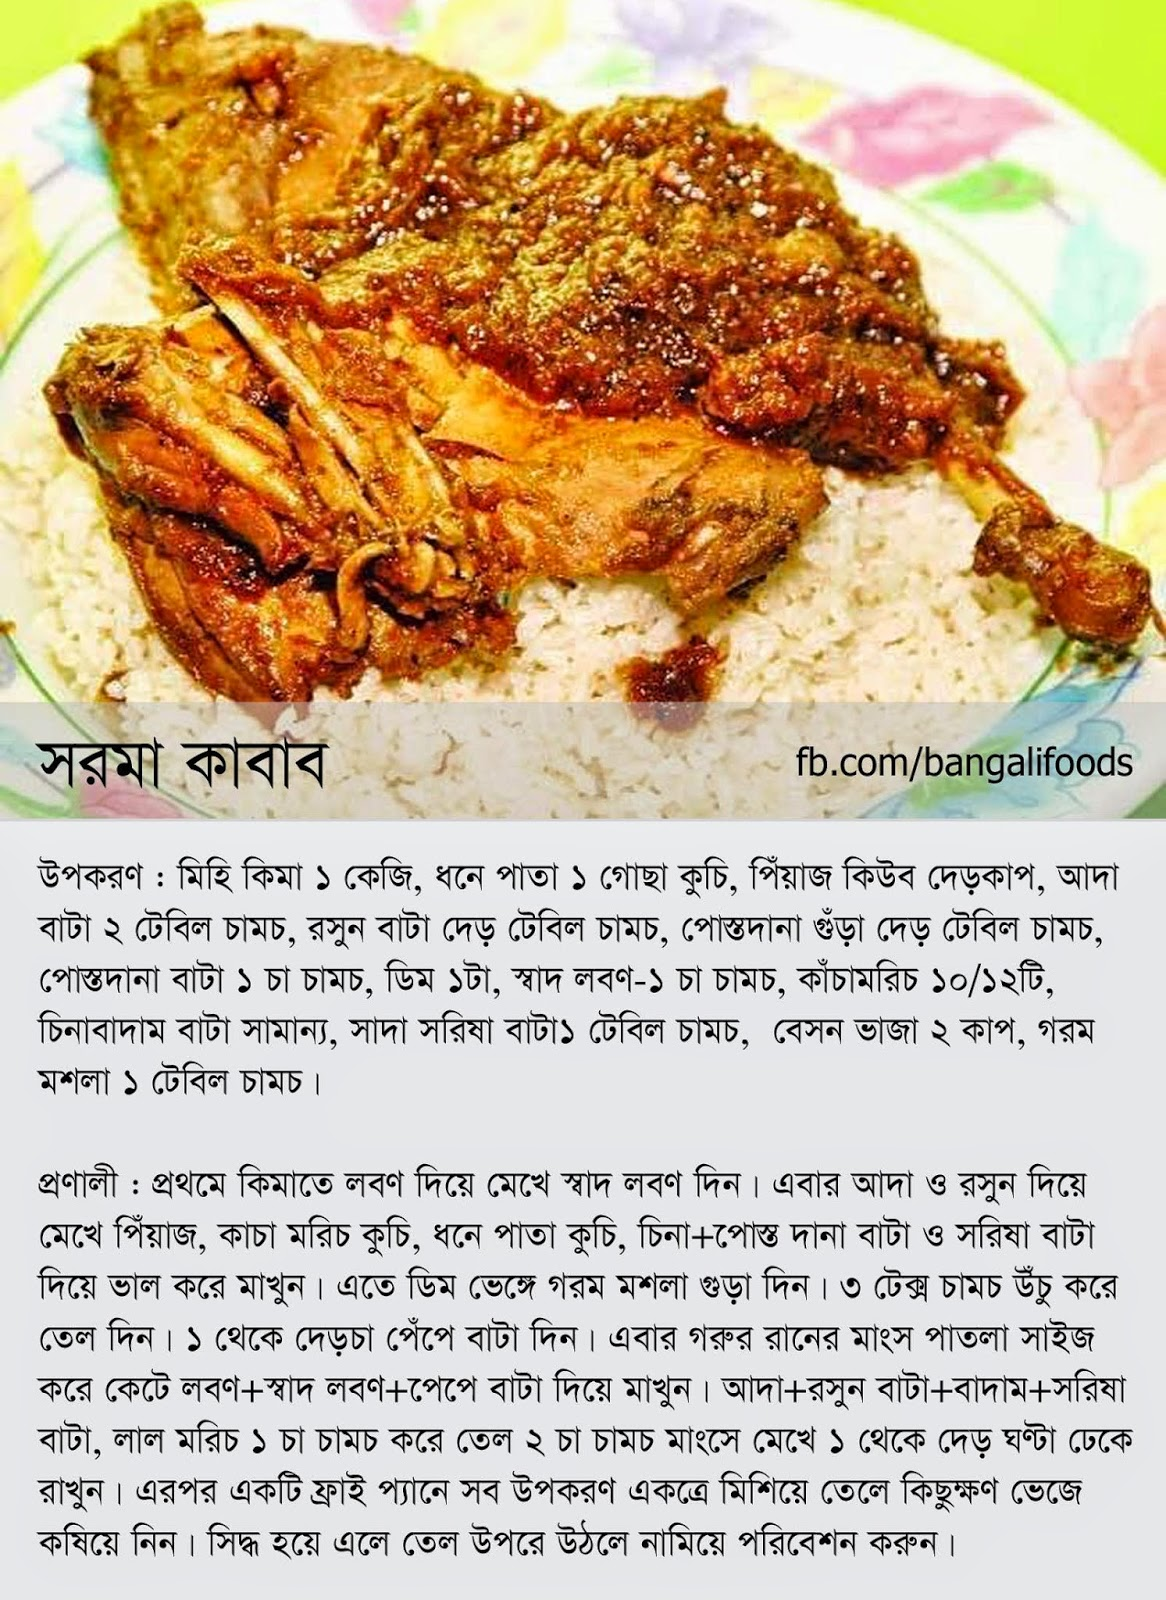 Bengali Food Recipe In English Language